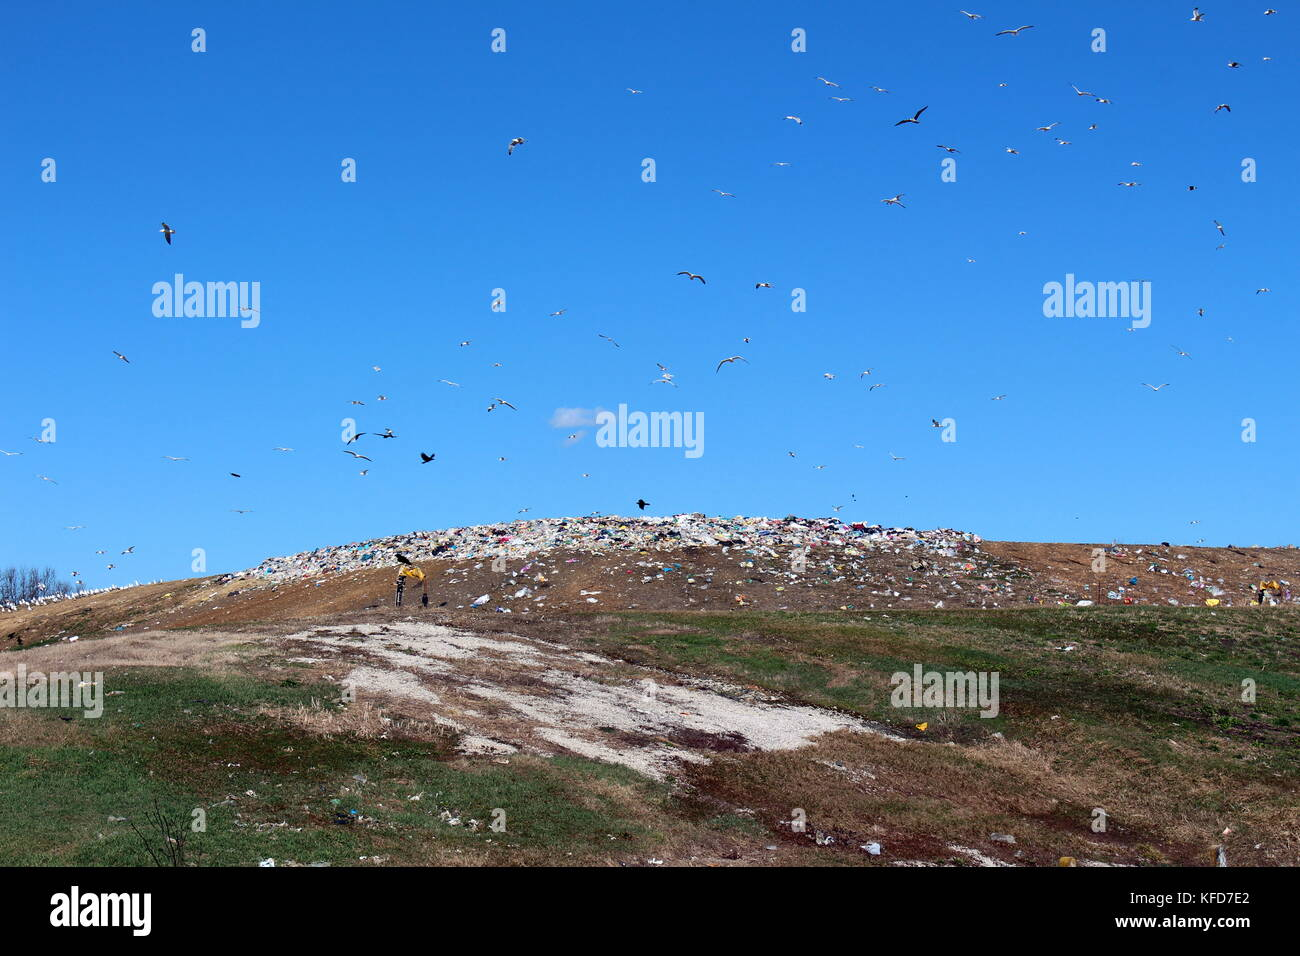 Seagulls flying in circles over large public landfill on a warm sunny day - Stock Image